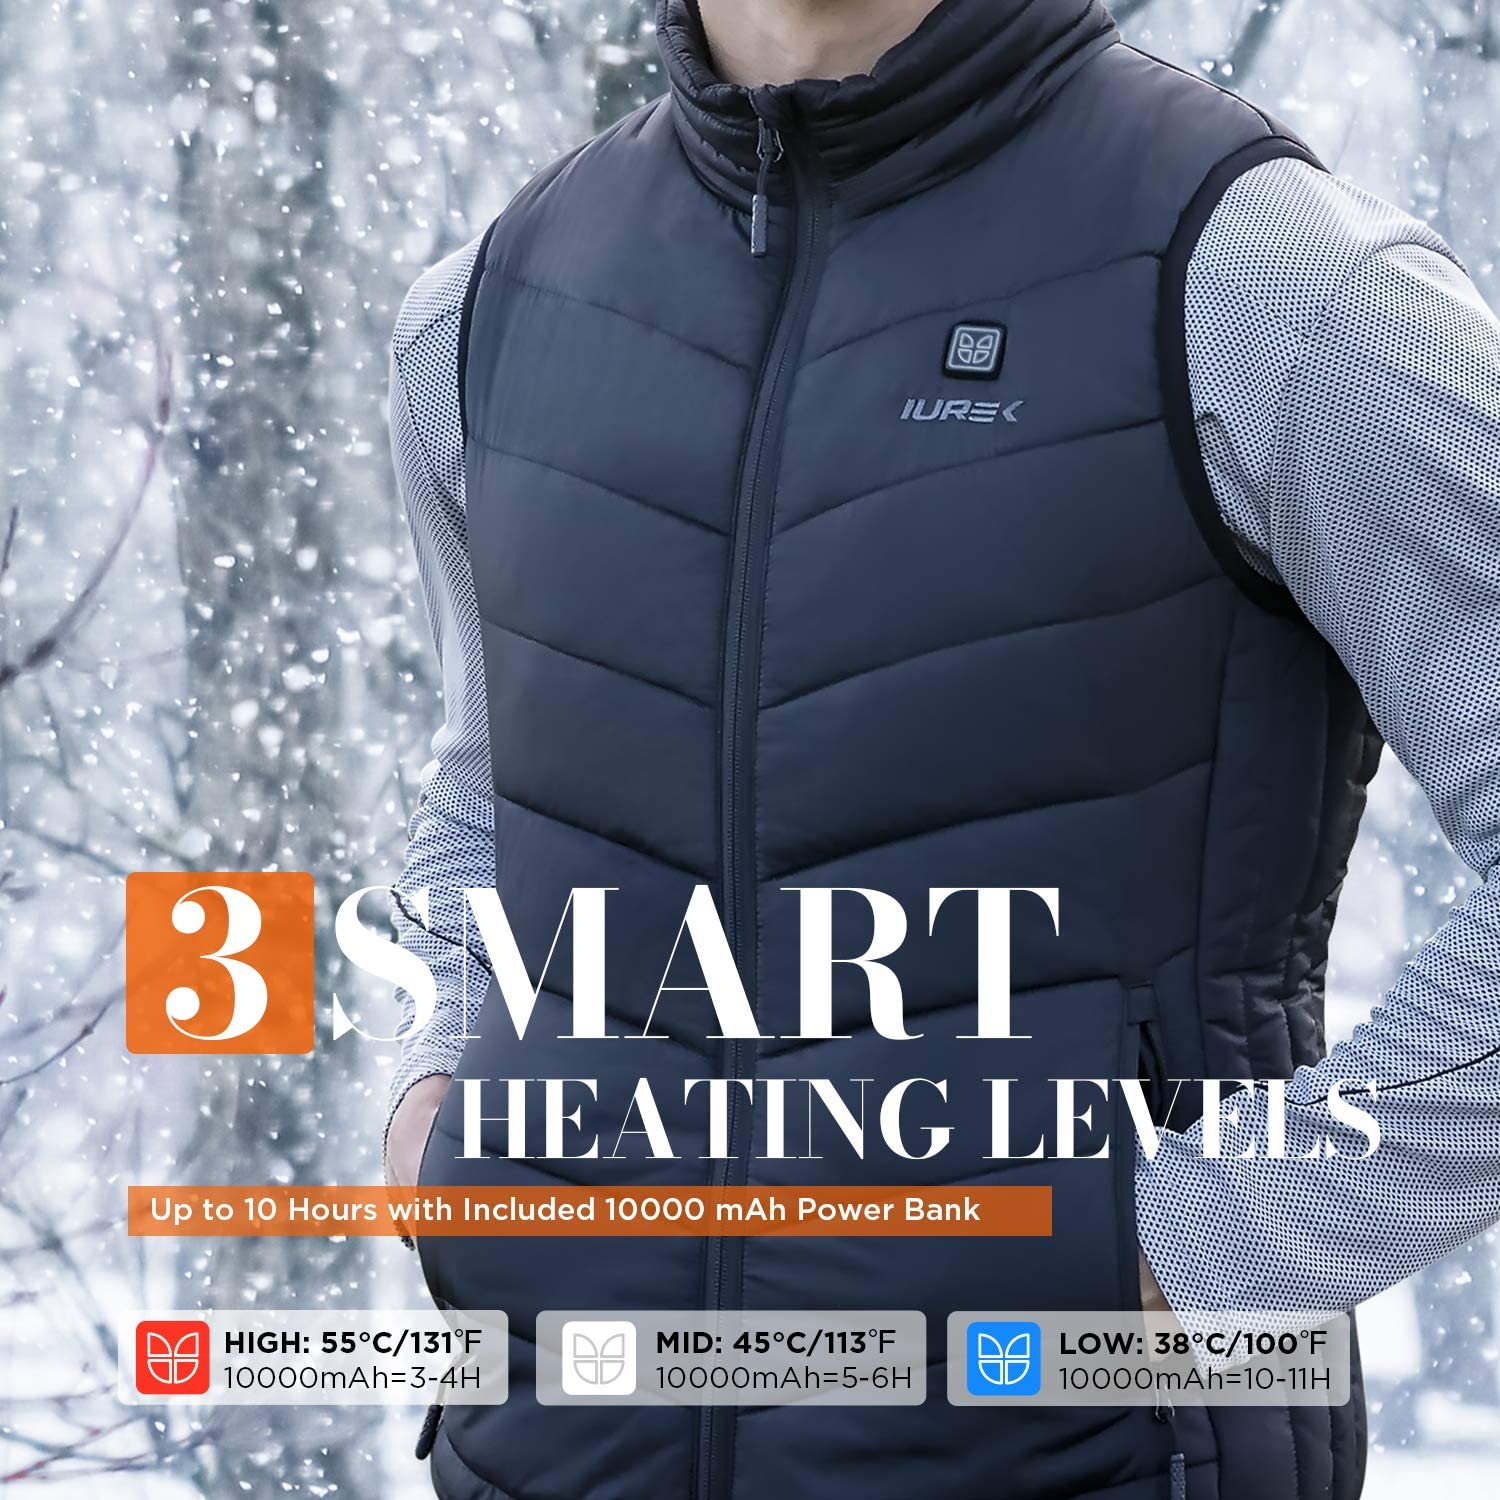 IUREK Mens Lightweight Heated Vest with 7.4V 10000mAh Battery Pack